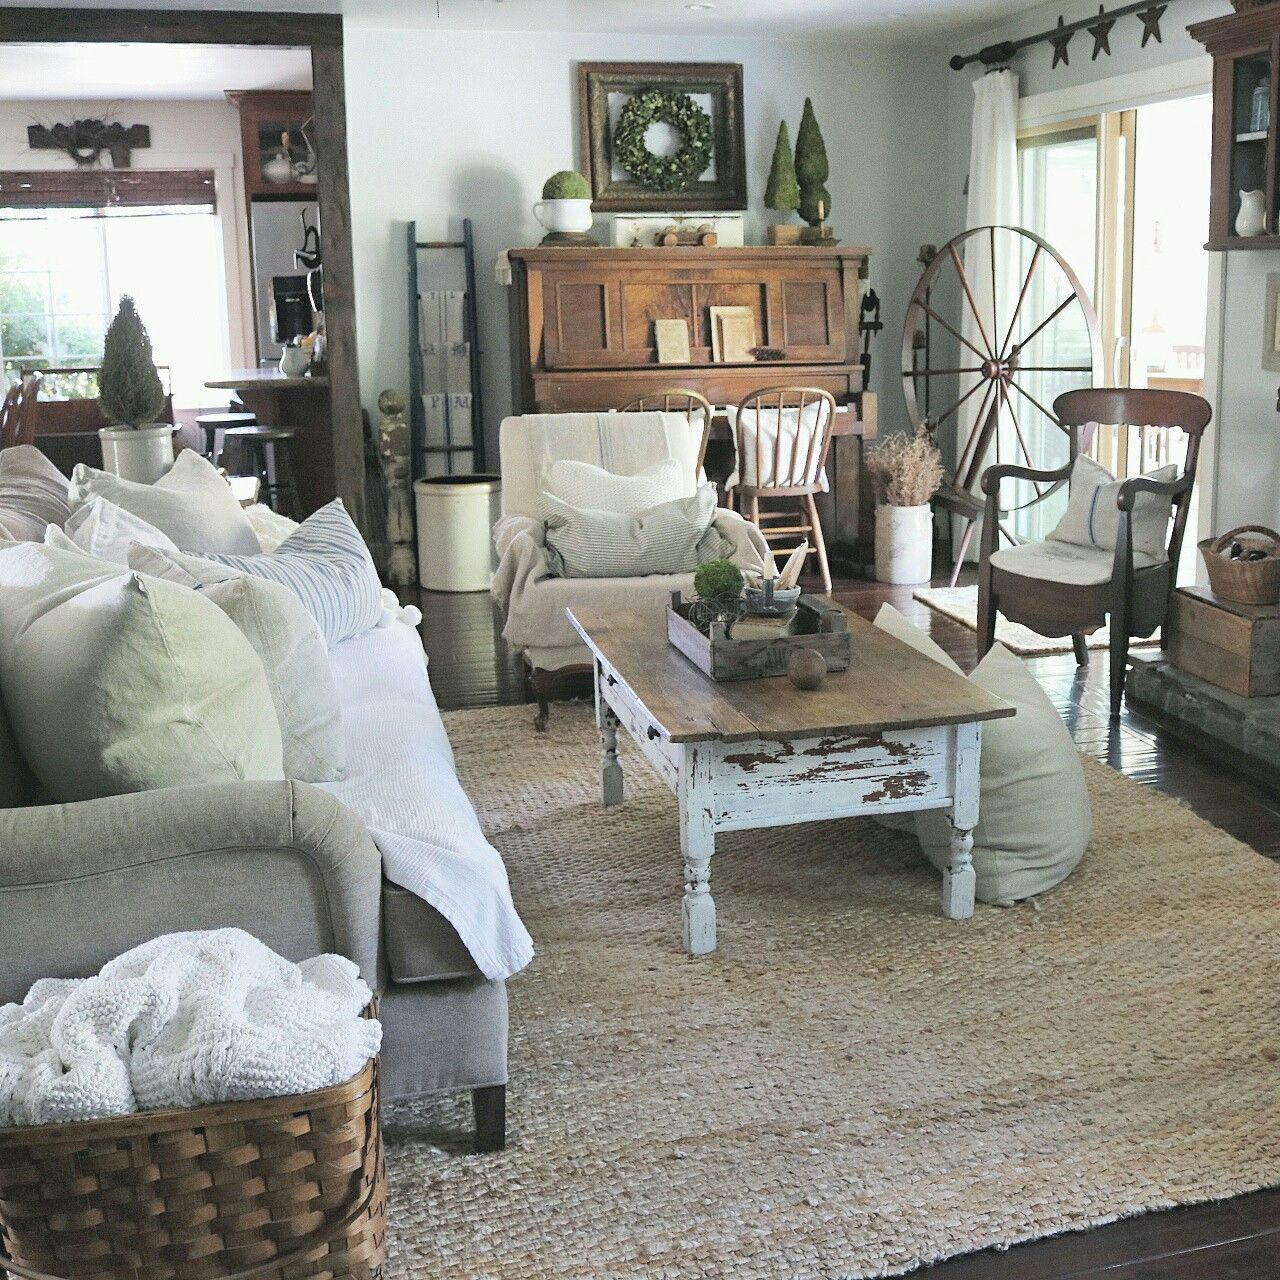 Farmhouse Living Room Furniture: Farmhouse - Living Room At Home On SweetCreek